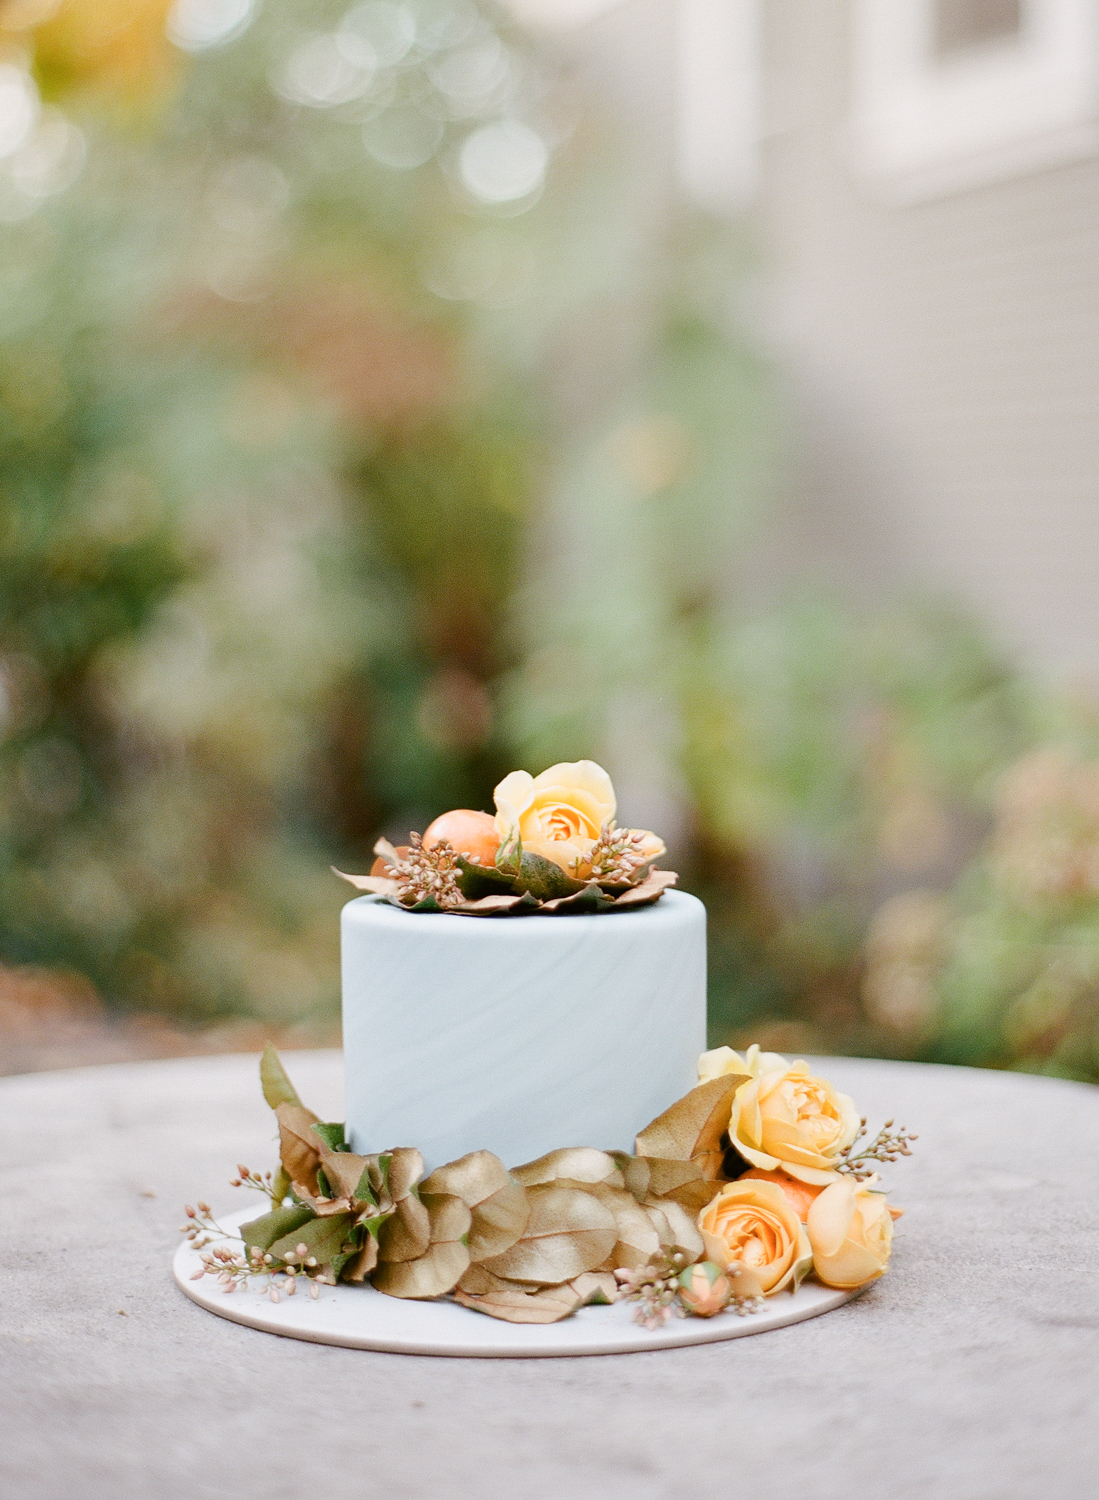 A one-tier, slate marble wedding cake decorated with orange roses and whole persimmons; Sylvie Gil Photography